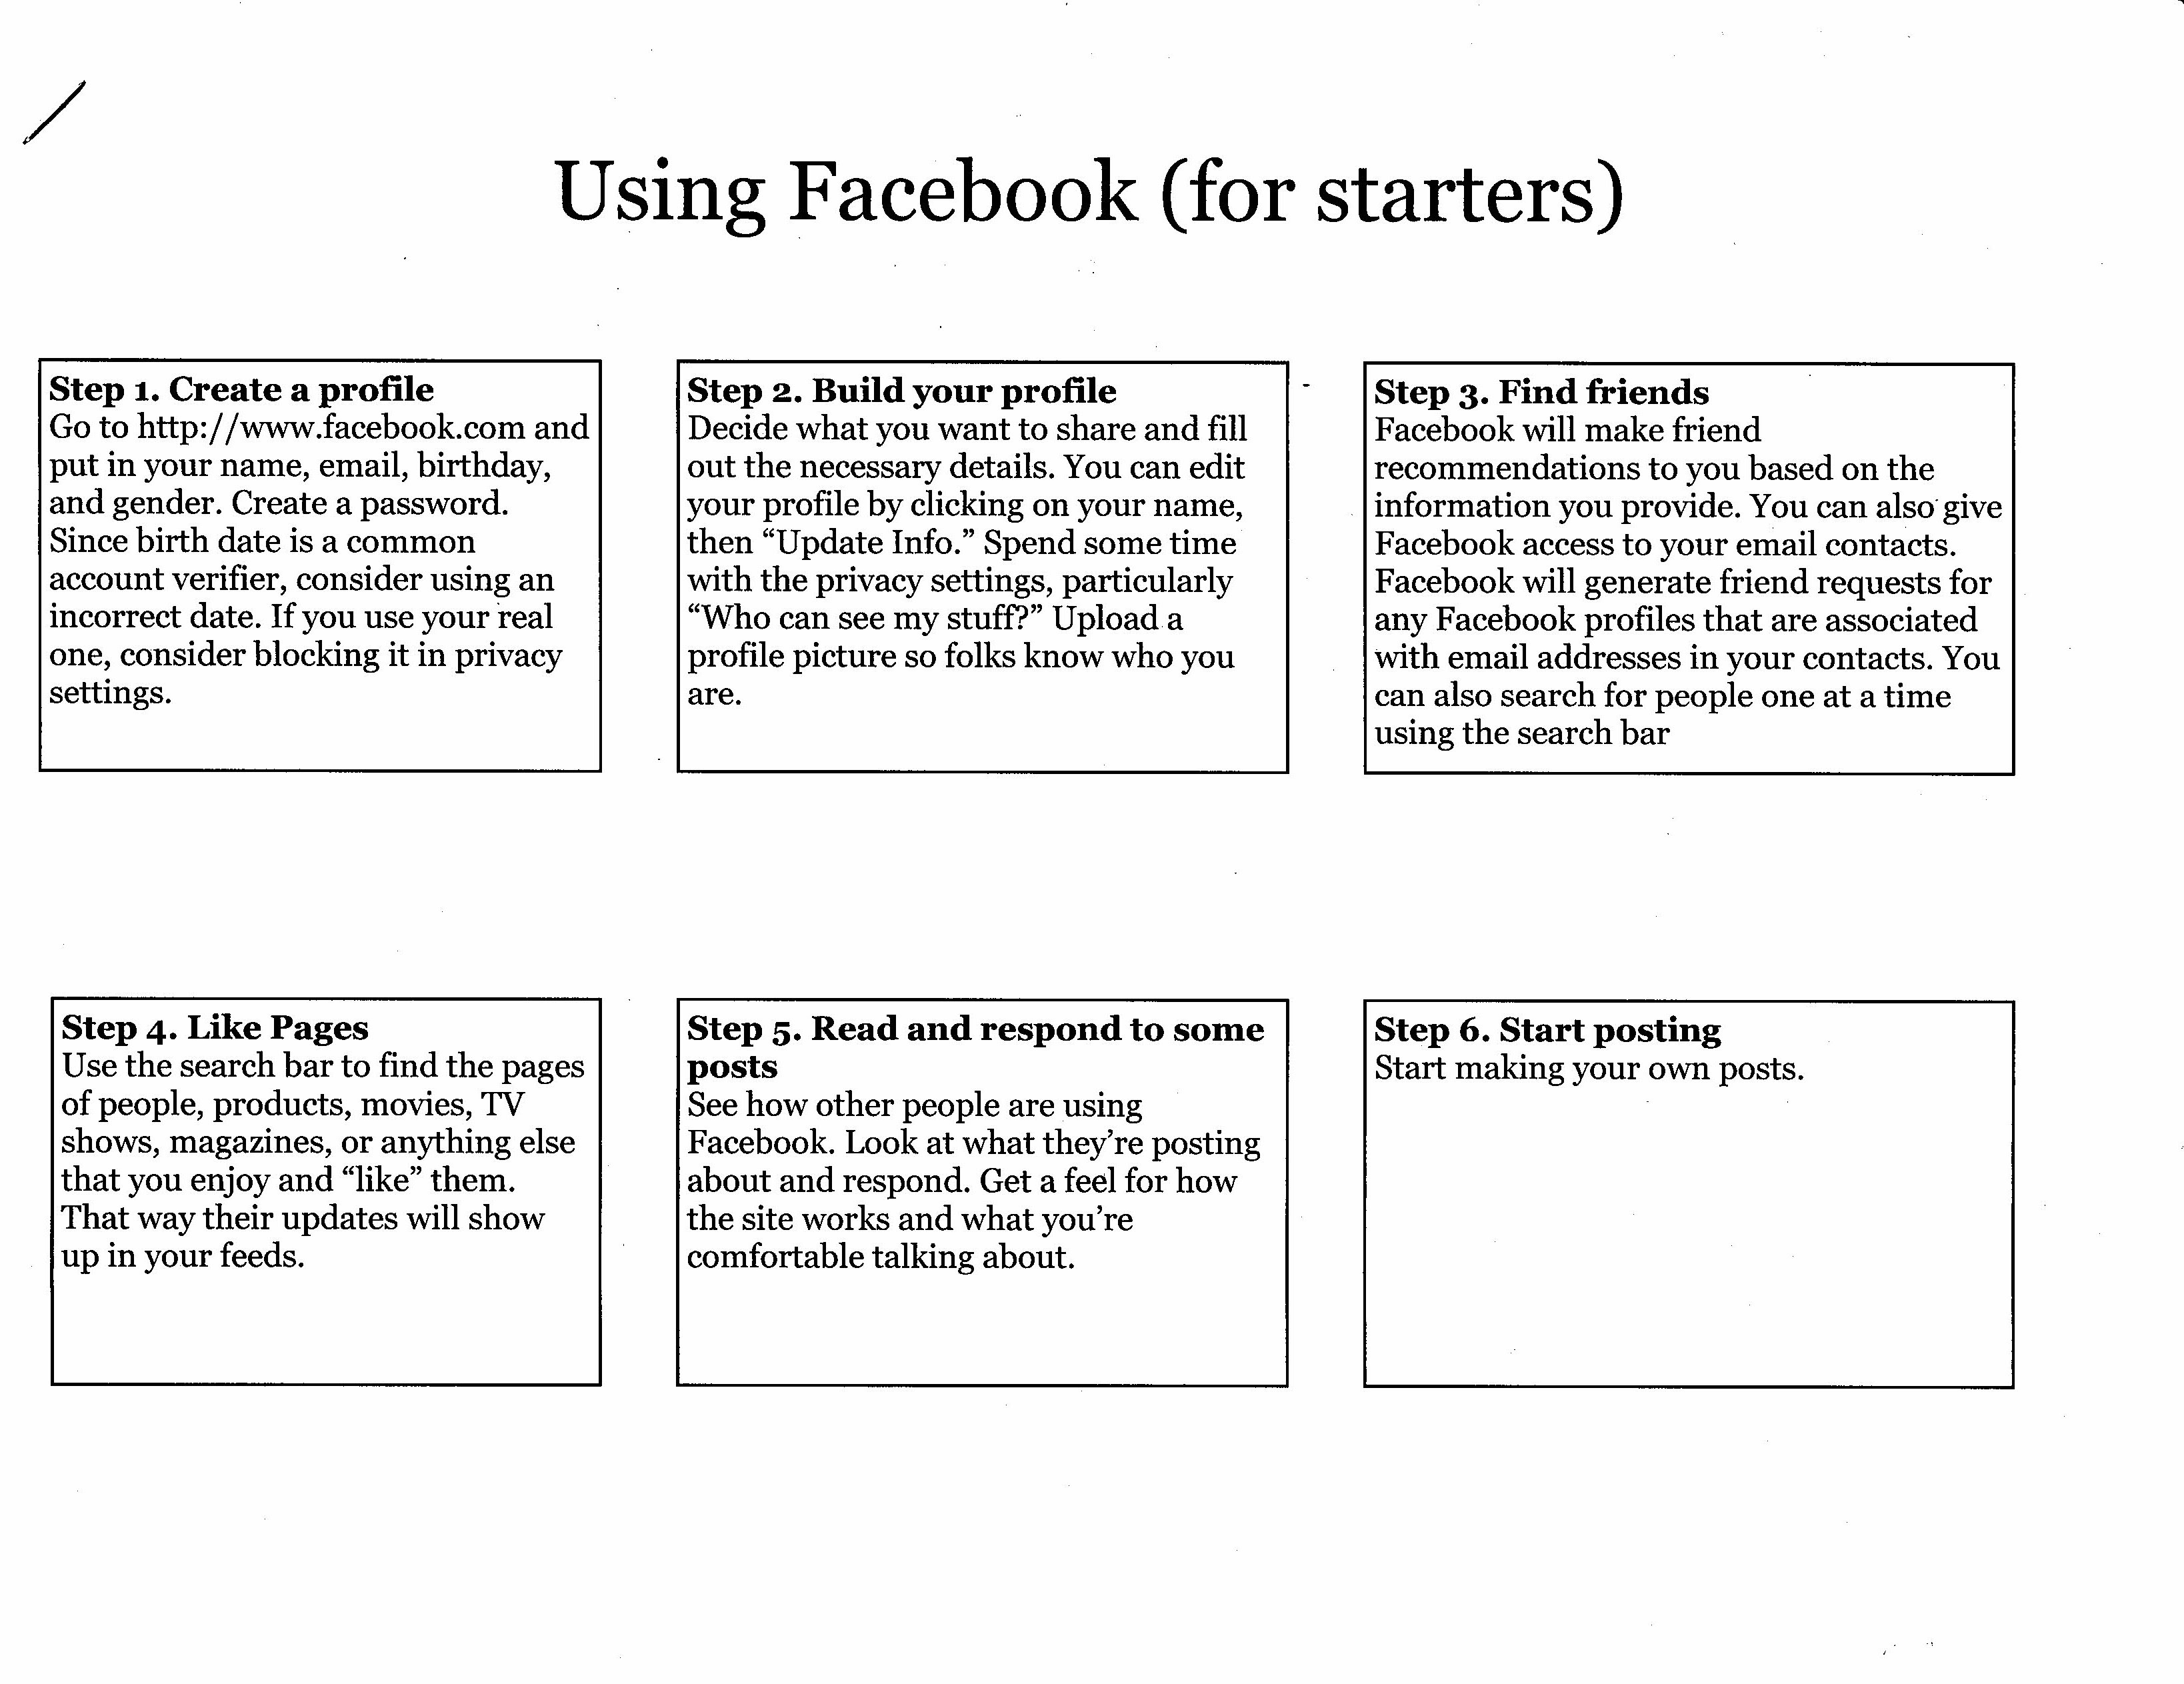 INTRODUCTION TO FACEBOOK - By Phil Barott - ROWLETT NEWSLETTER